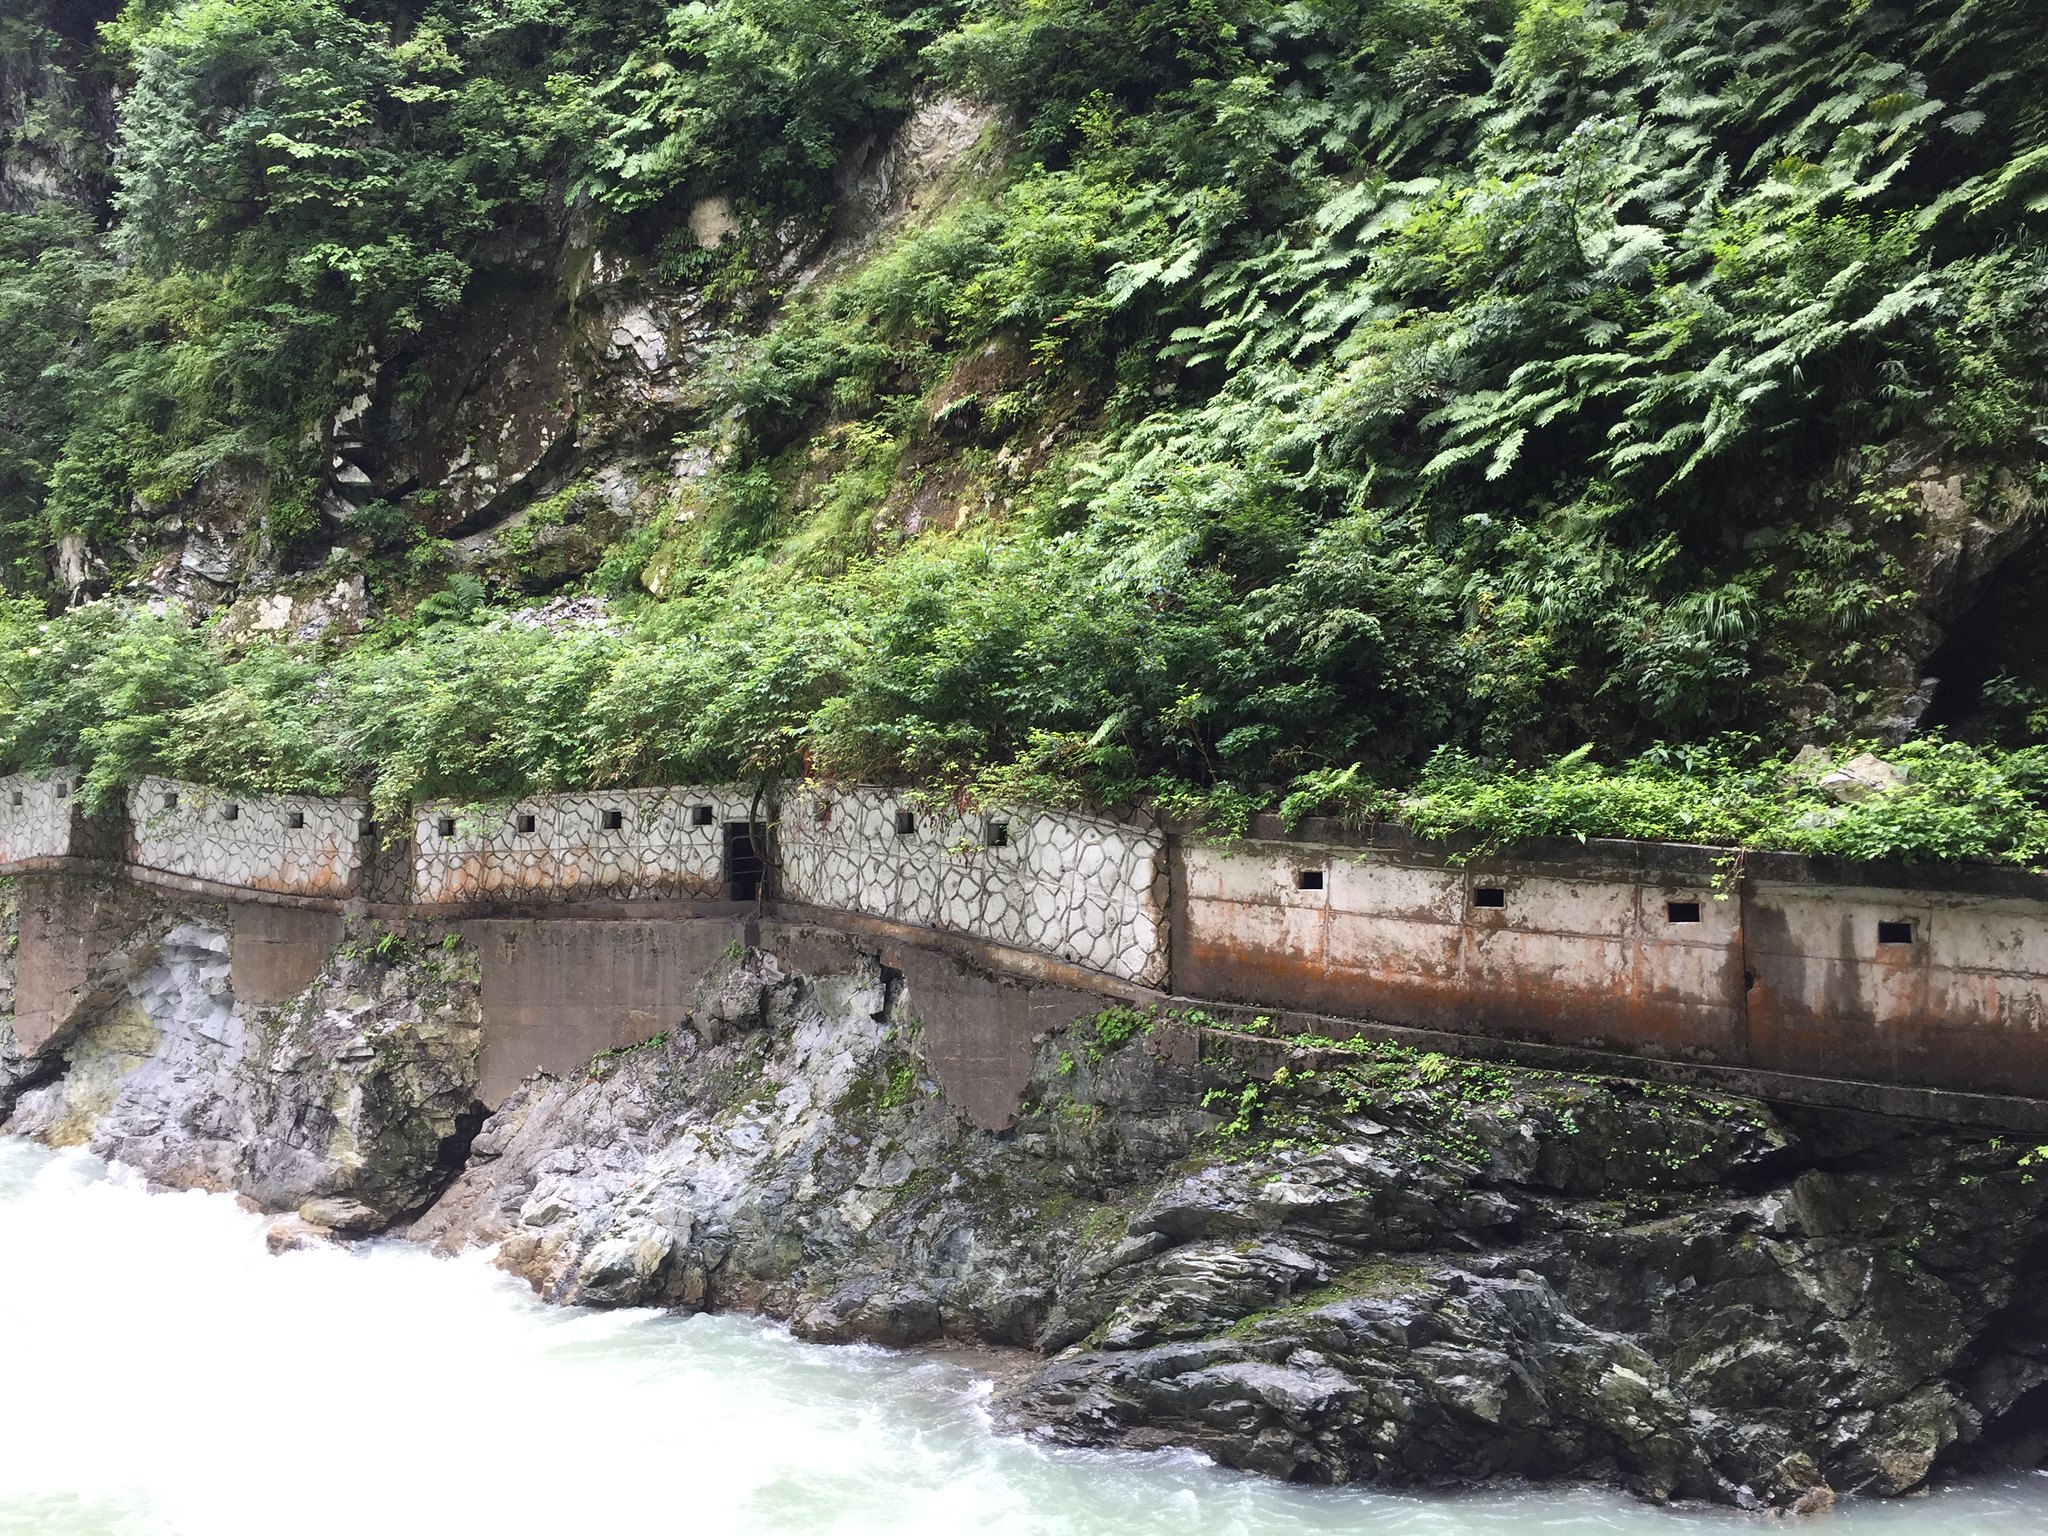 The route to Sarurobikyo (Monkey Jumping Gorge)